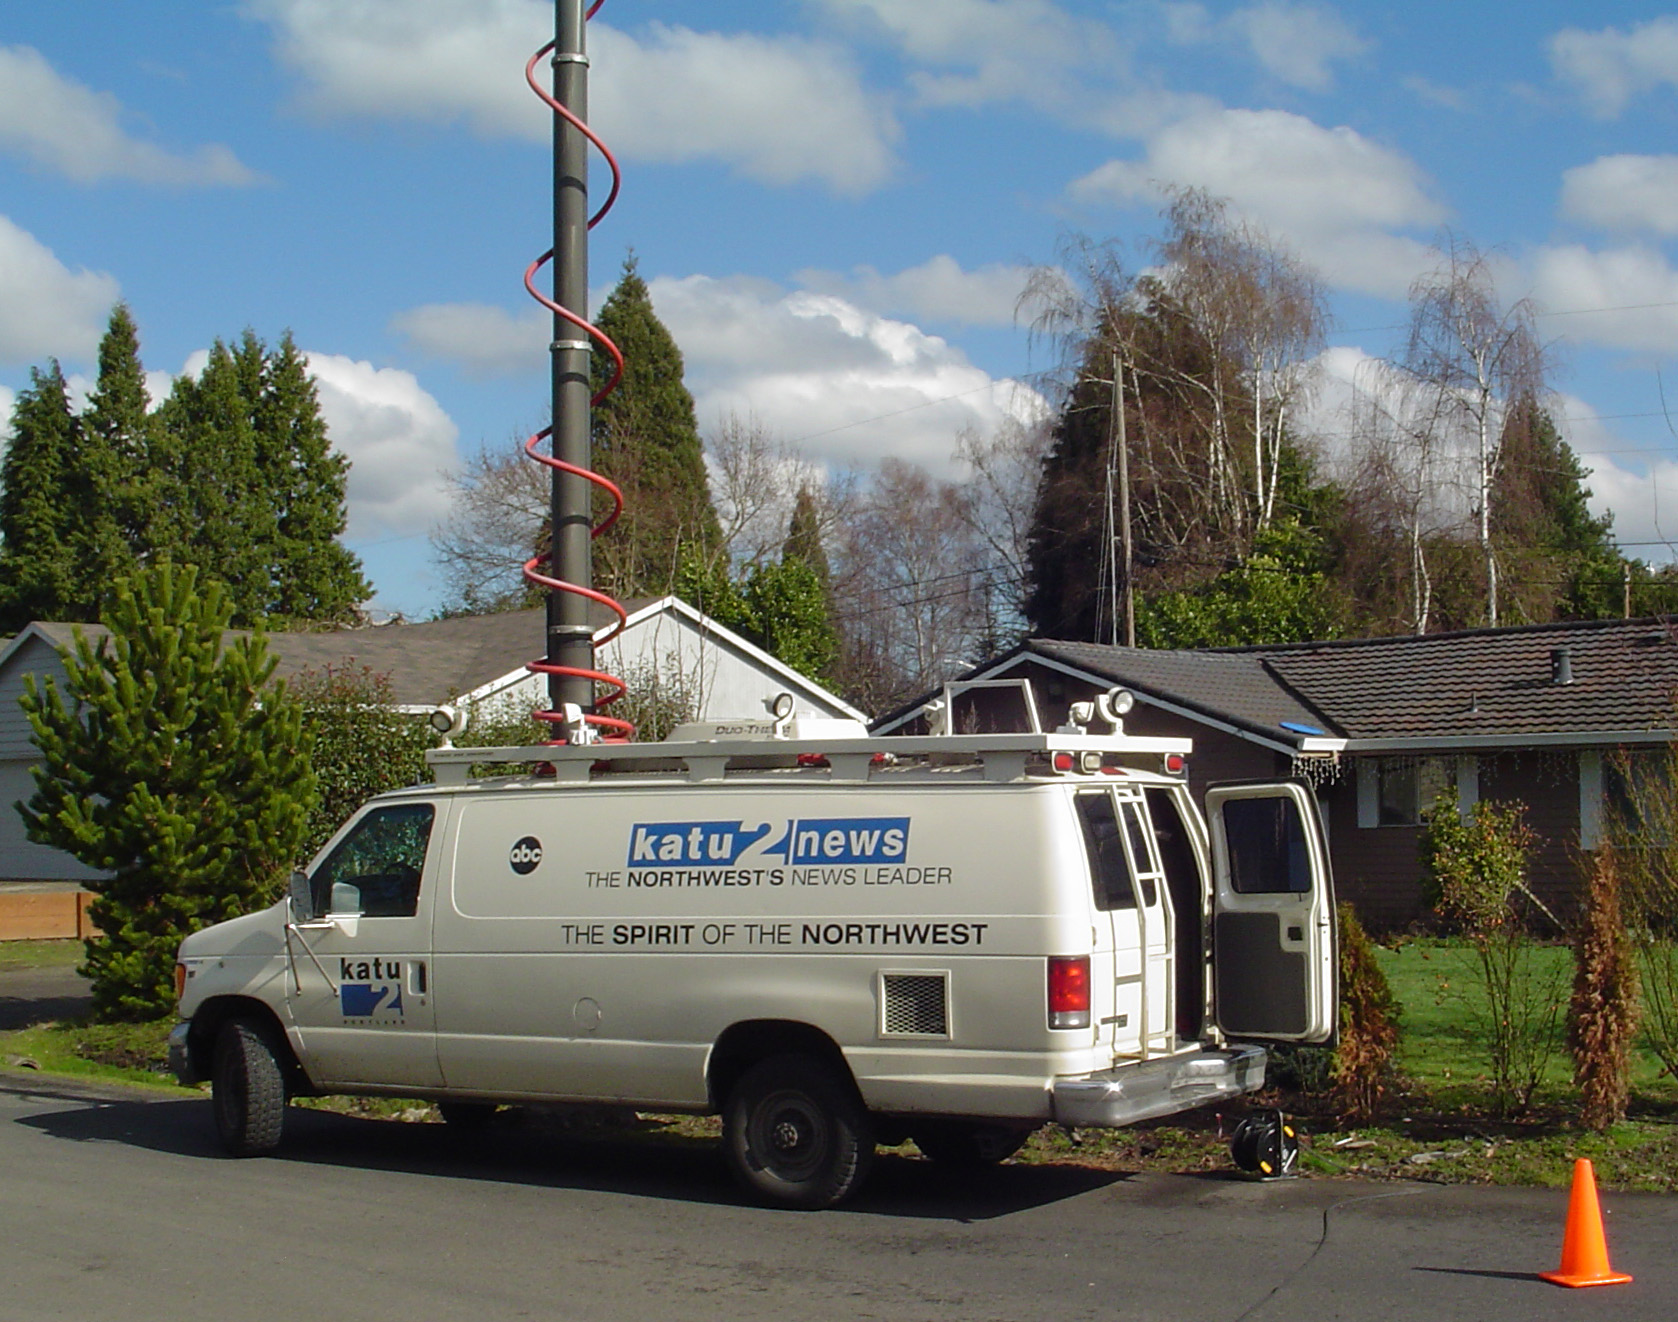 File:KATU Channel 2 News van jpg - Wikimedia Commons